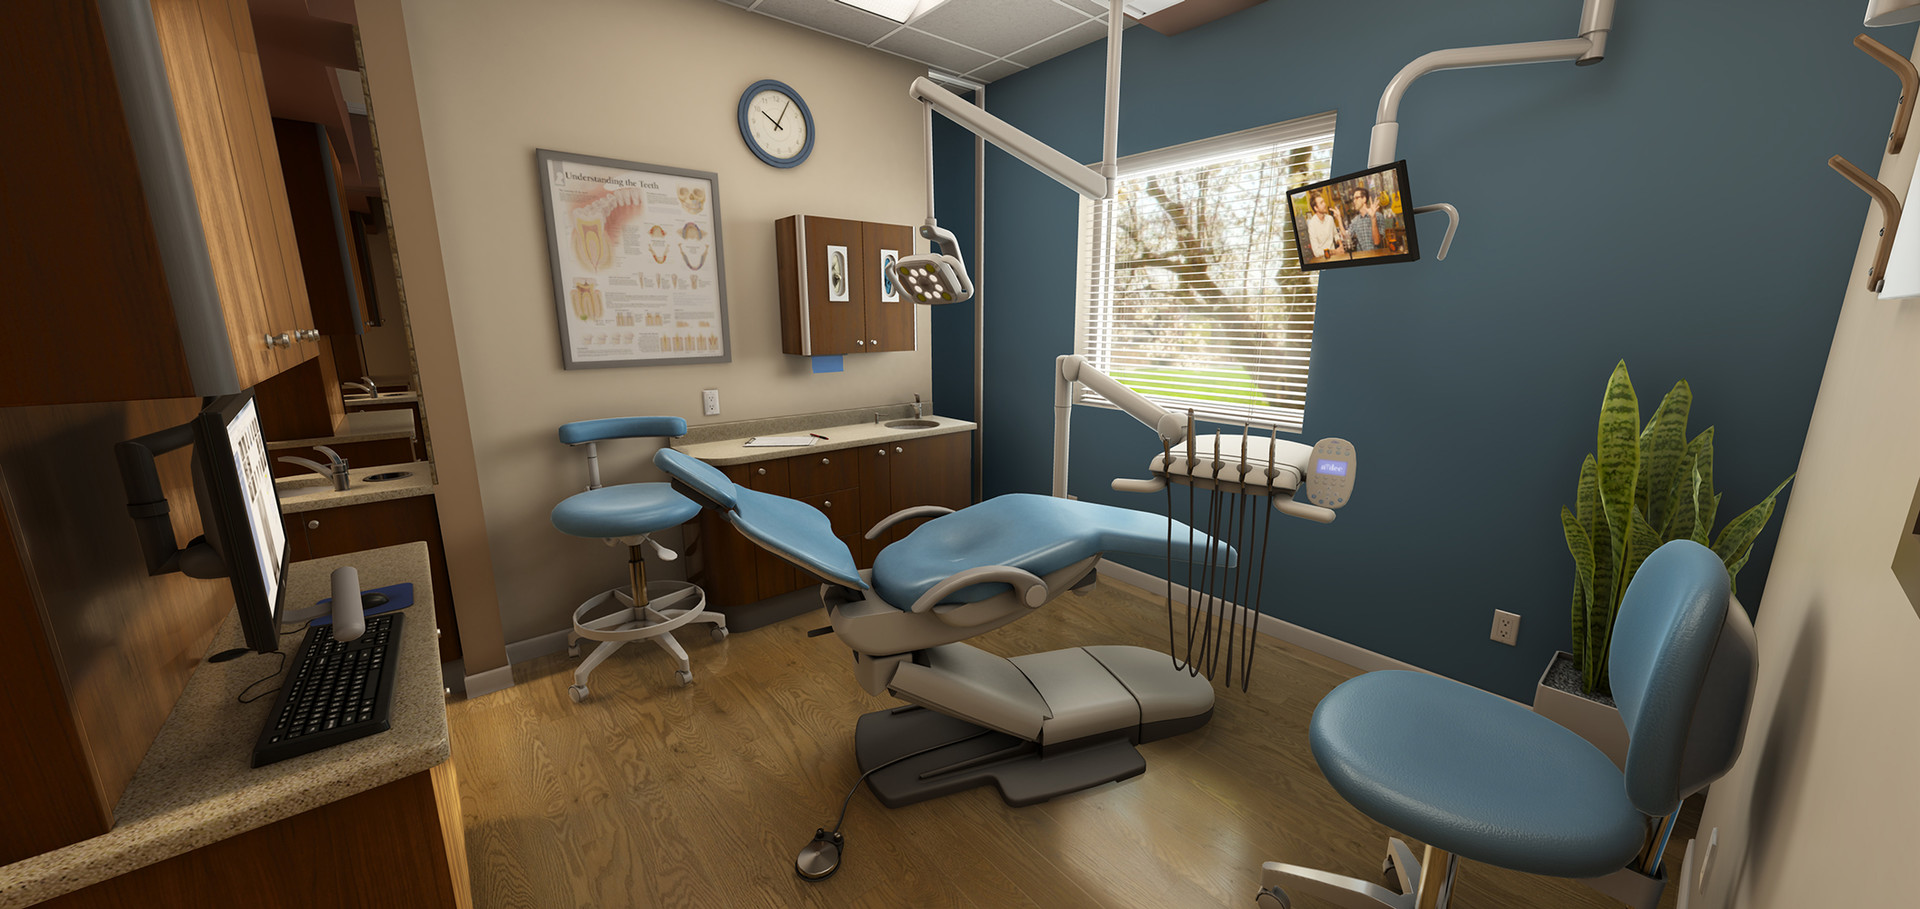 Jeremy h brown dentist office 01